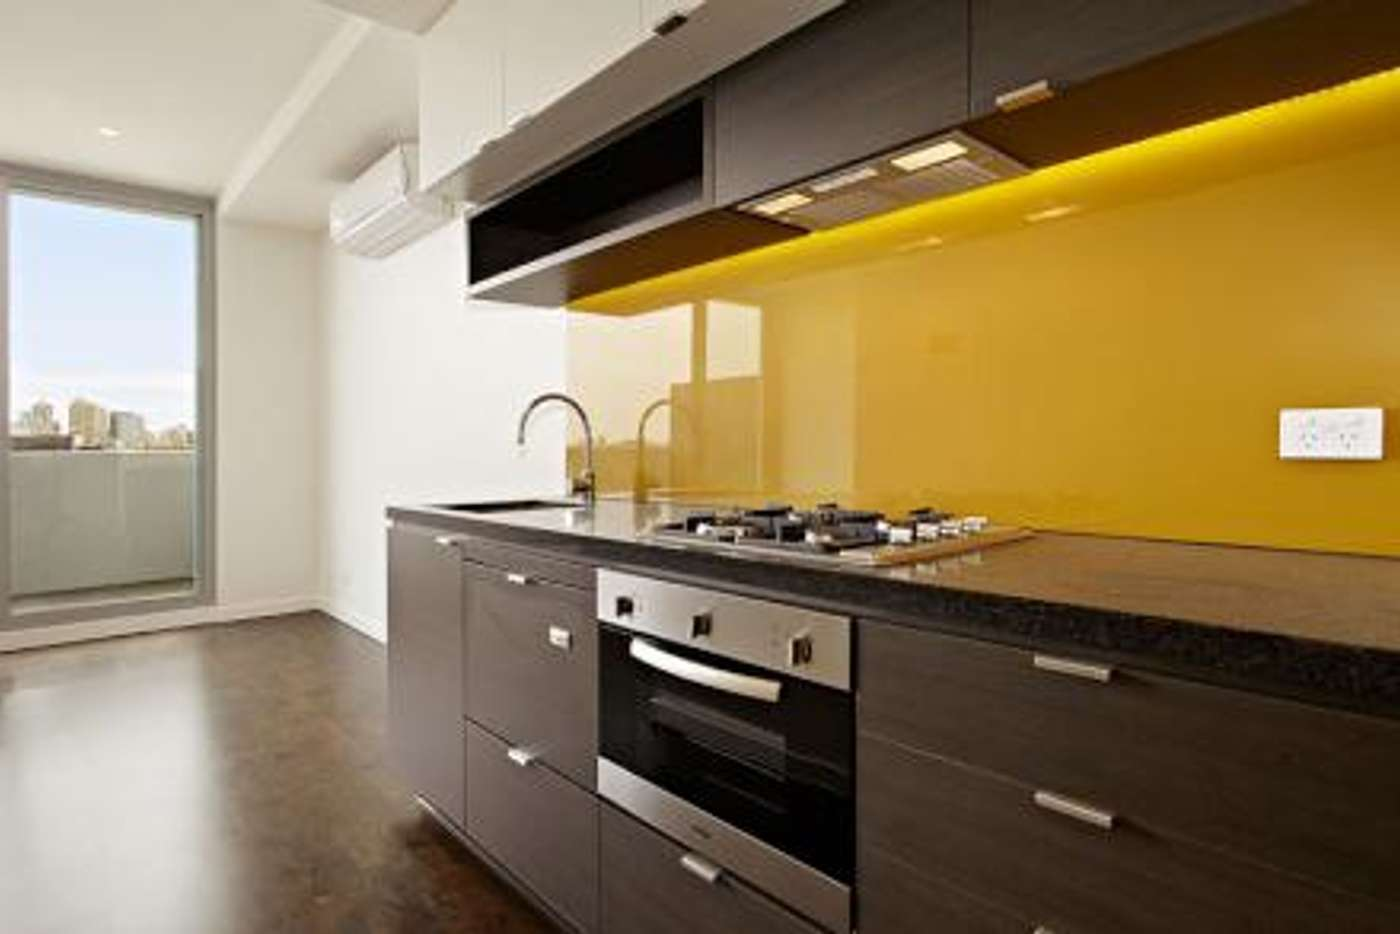 Main view of Homely apartment listing, 604/120 Palmer Street, Richmond VIC 3121